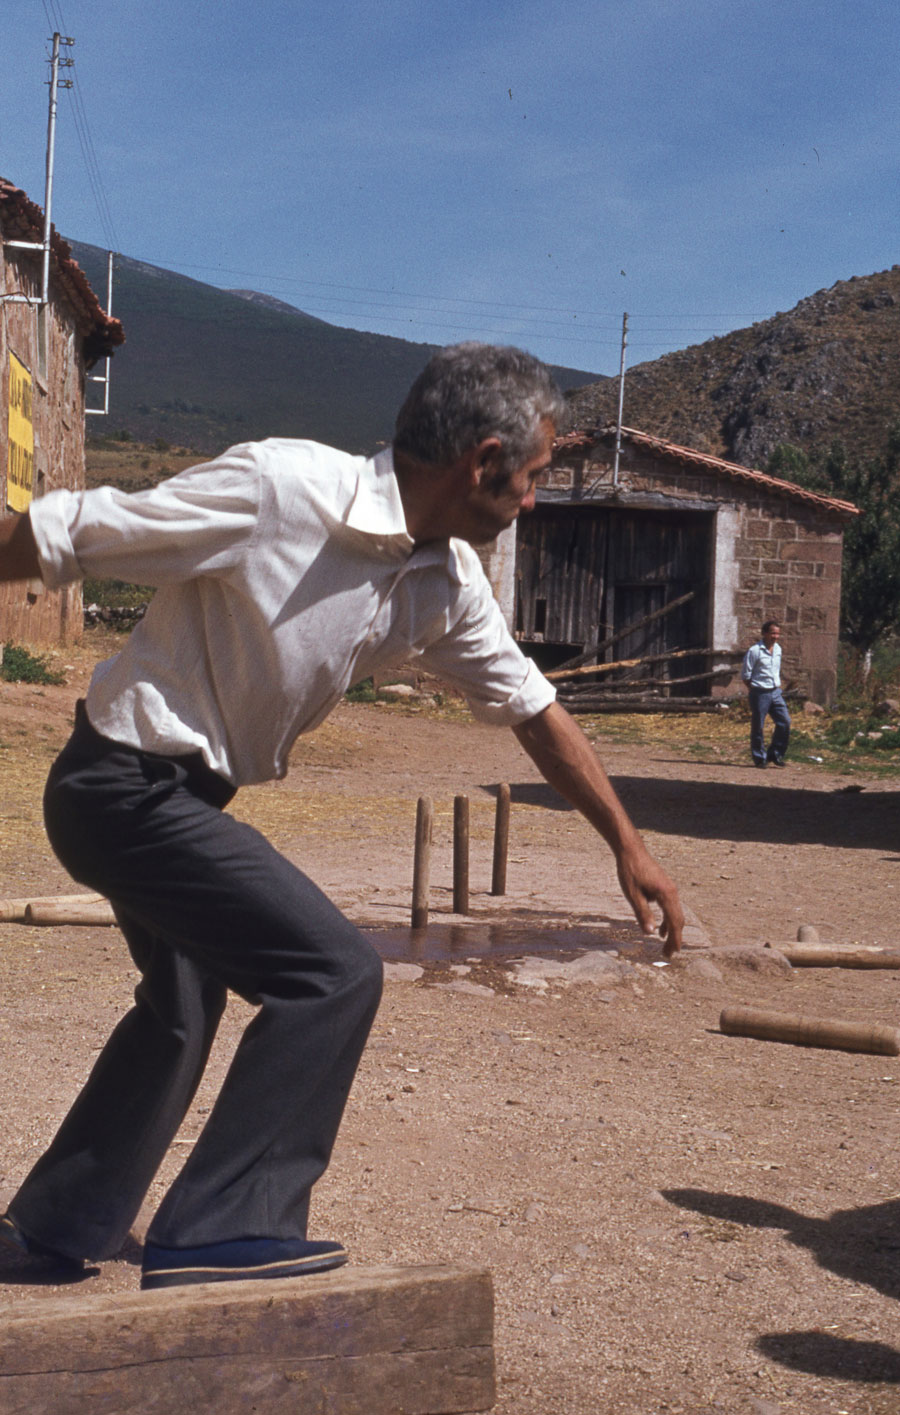 BU_Tinieblas_Juego-de-Bolos_1981_foto-Benito-Arnáiz_003